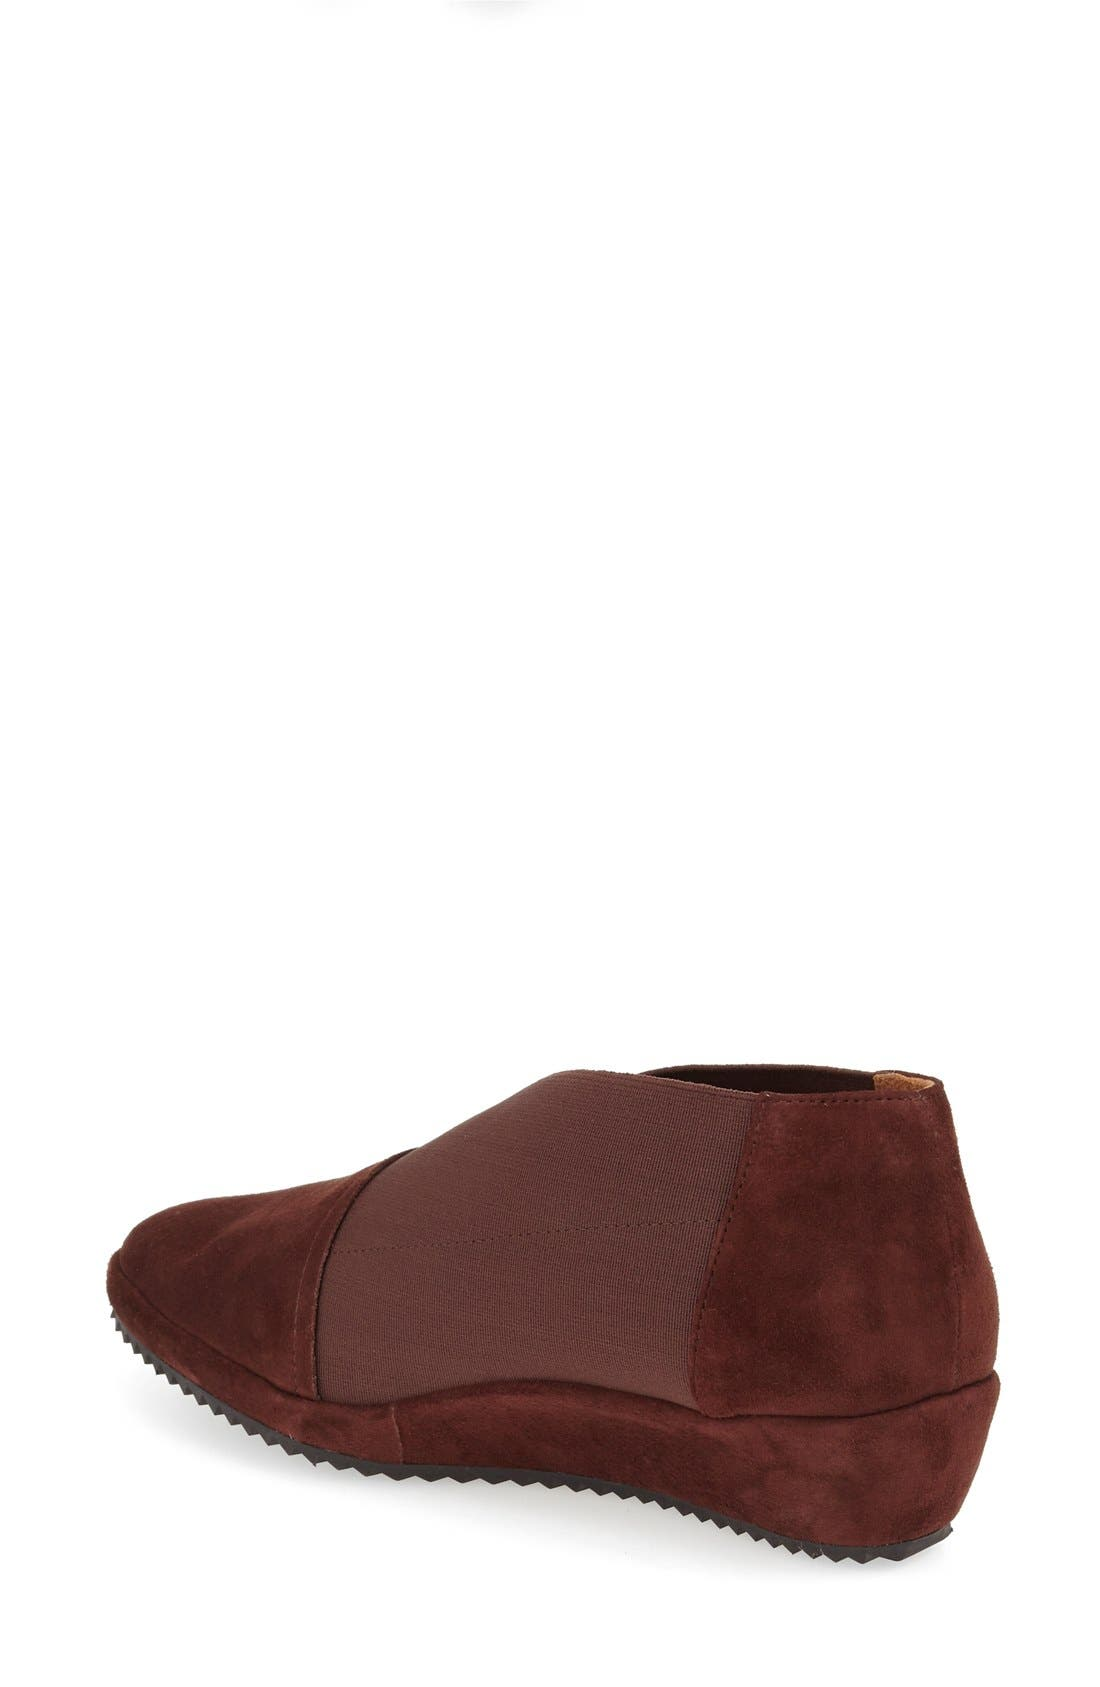 'Bowden' Slip-On Wedge,                             Alternate thumbnail 2, color,                             Espresso Suede Leather